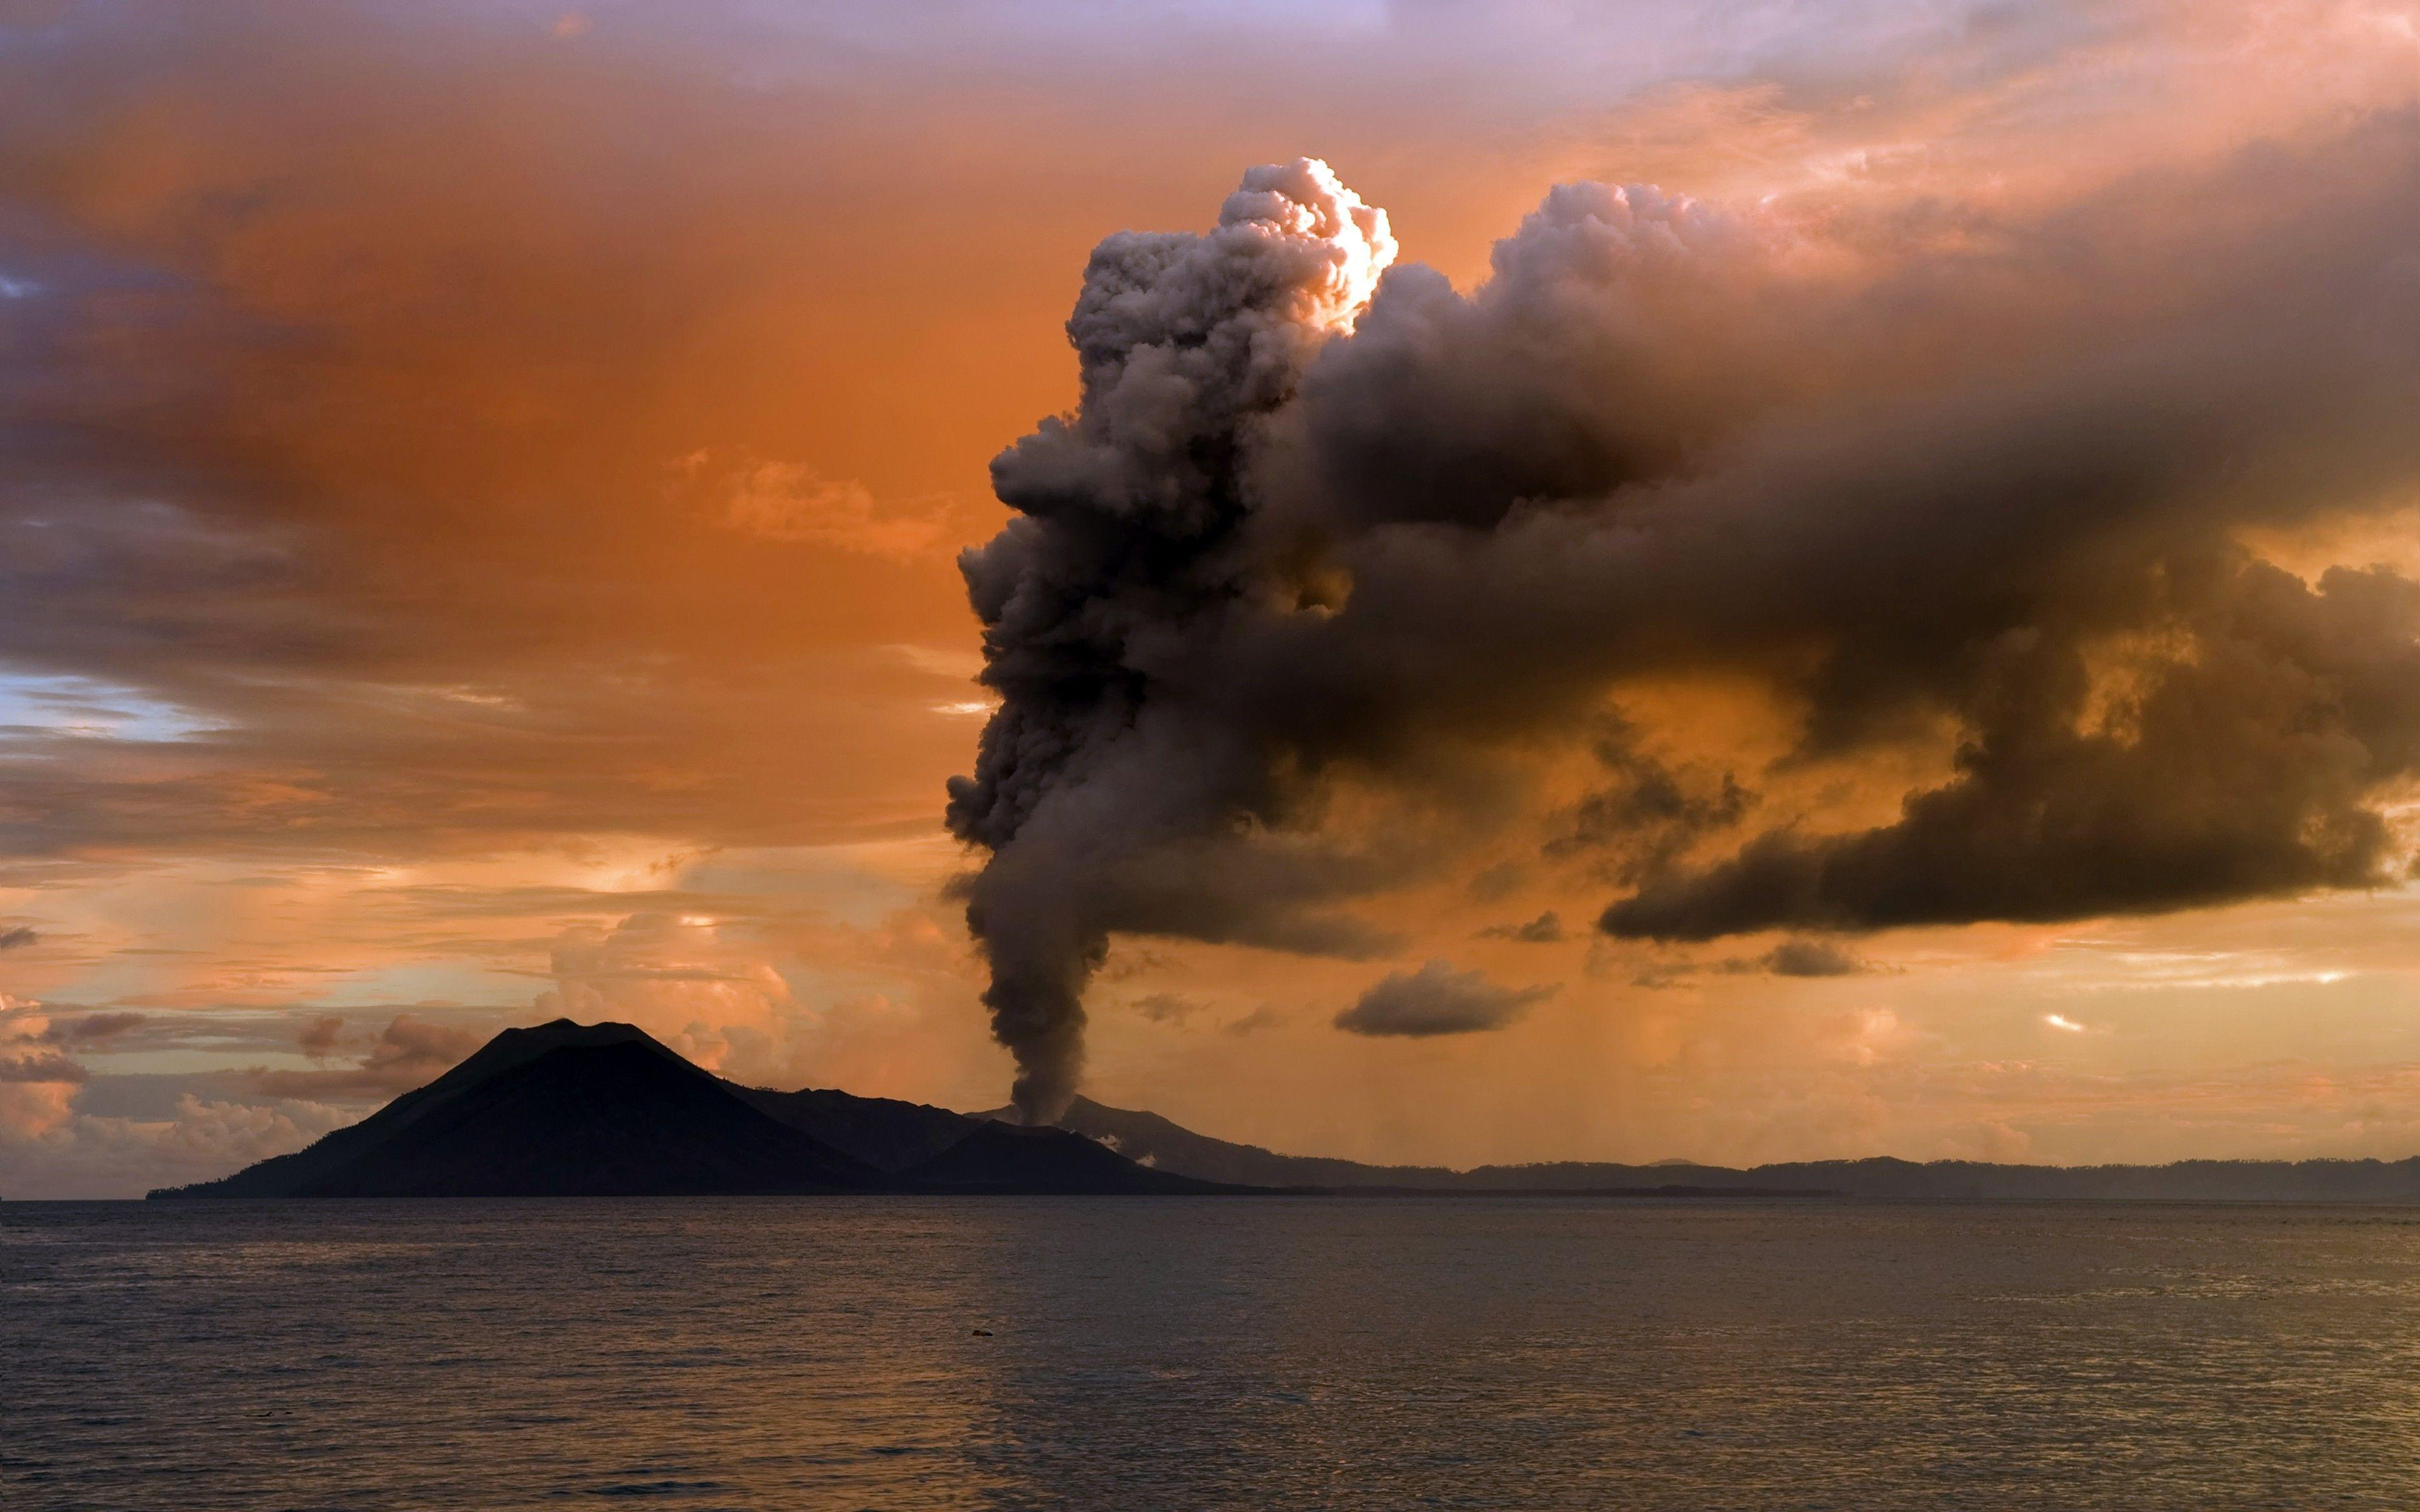 volcano, Landscape, Clouds, Sunset, Sea, Eruption Wallpapers HD ...